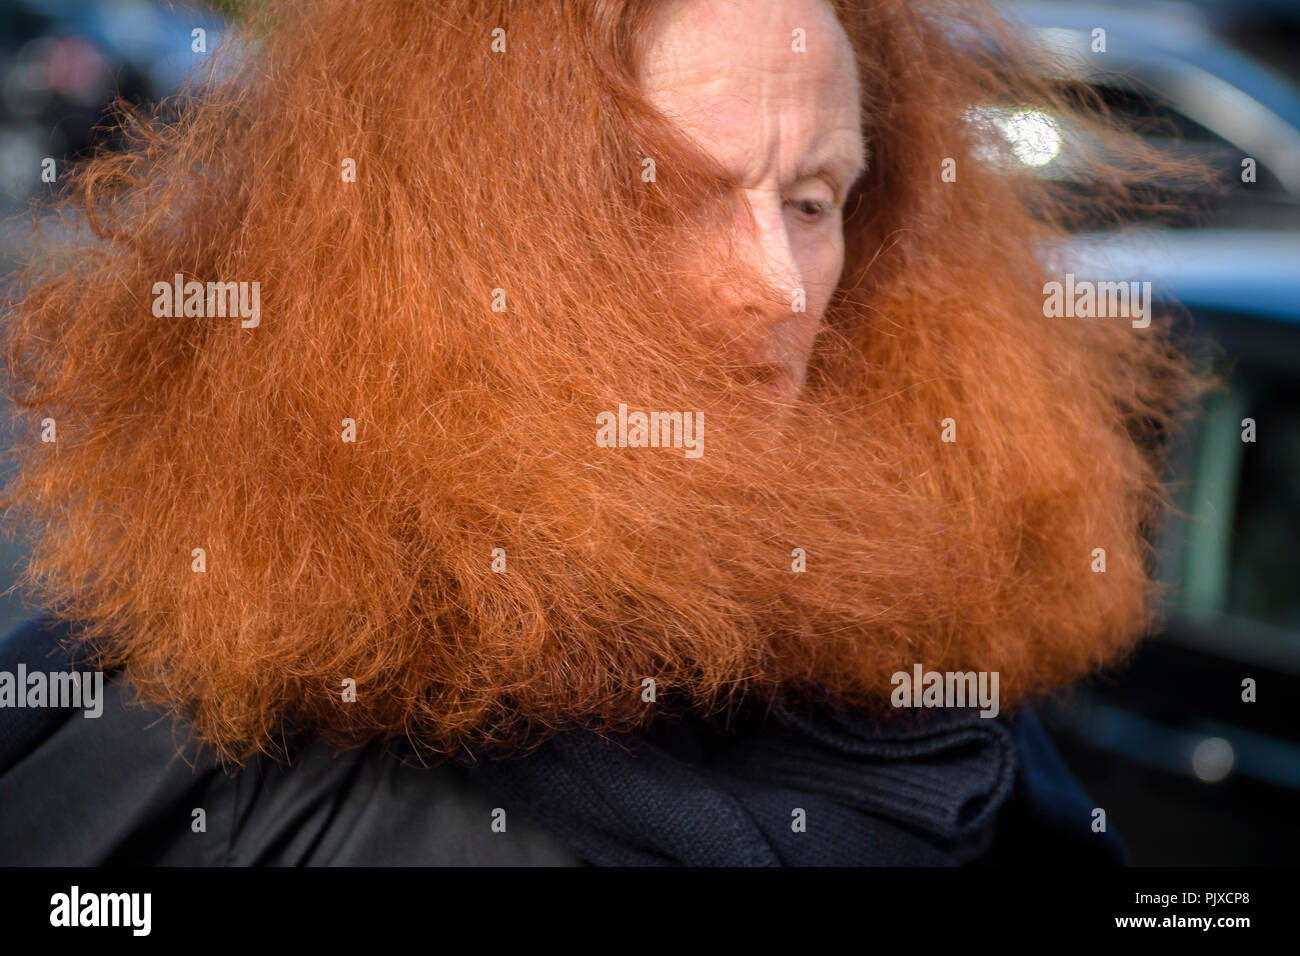 Former model and the creative director at large of American Vogue magazine Grace Coddington arrives on Day Six for Paris Fashion Week Spring/Summer 2017 Collection shows on October 02, 2016, in Paris, France. - Stock Image